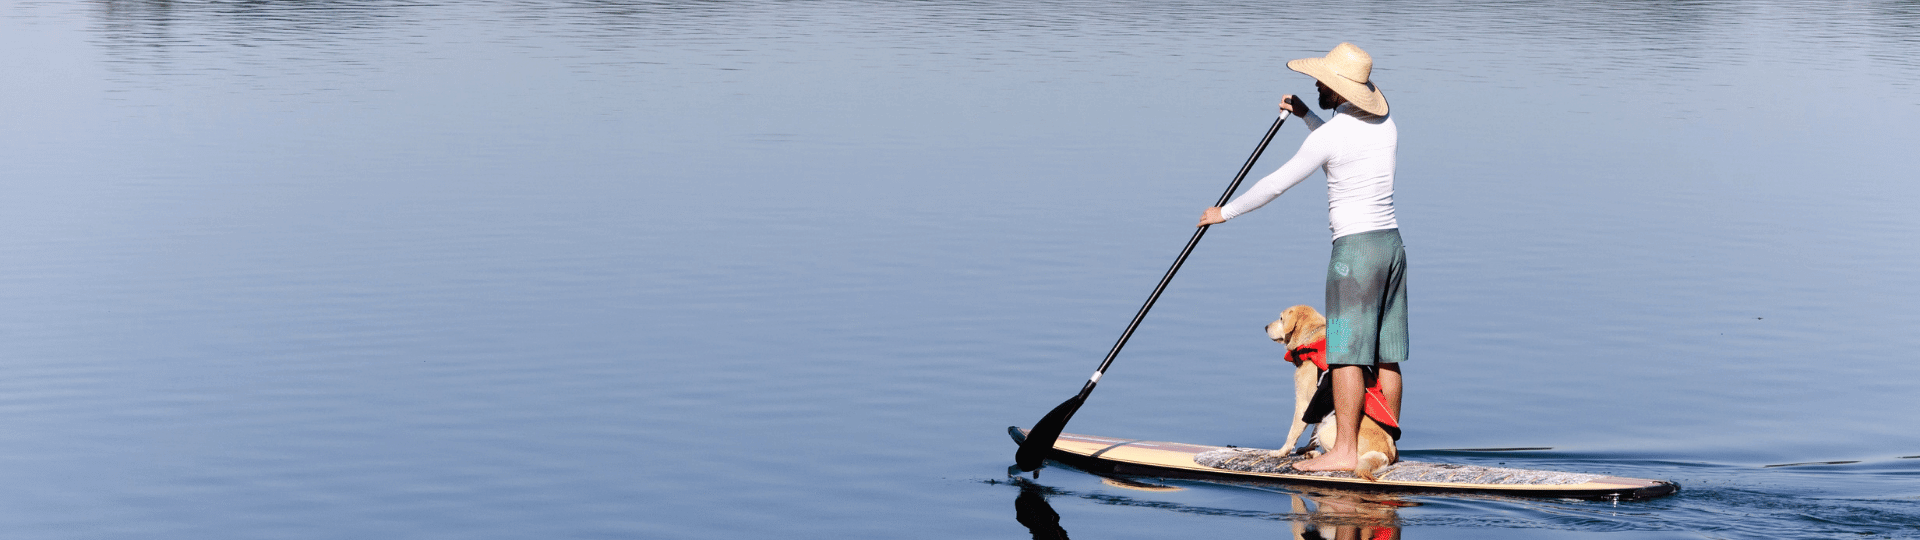 Man paddle boarding with dog